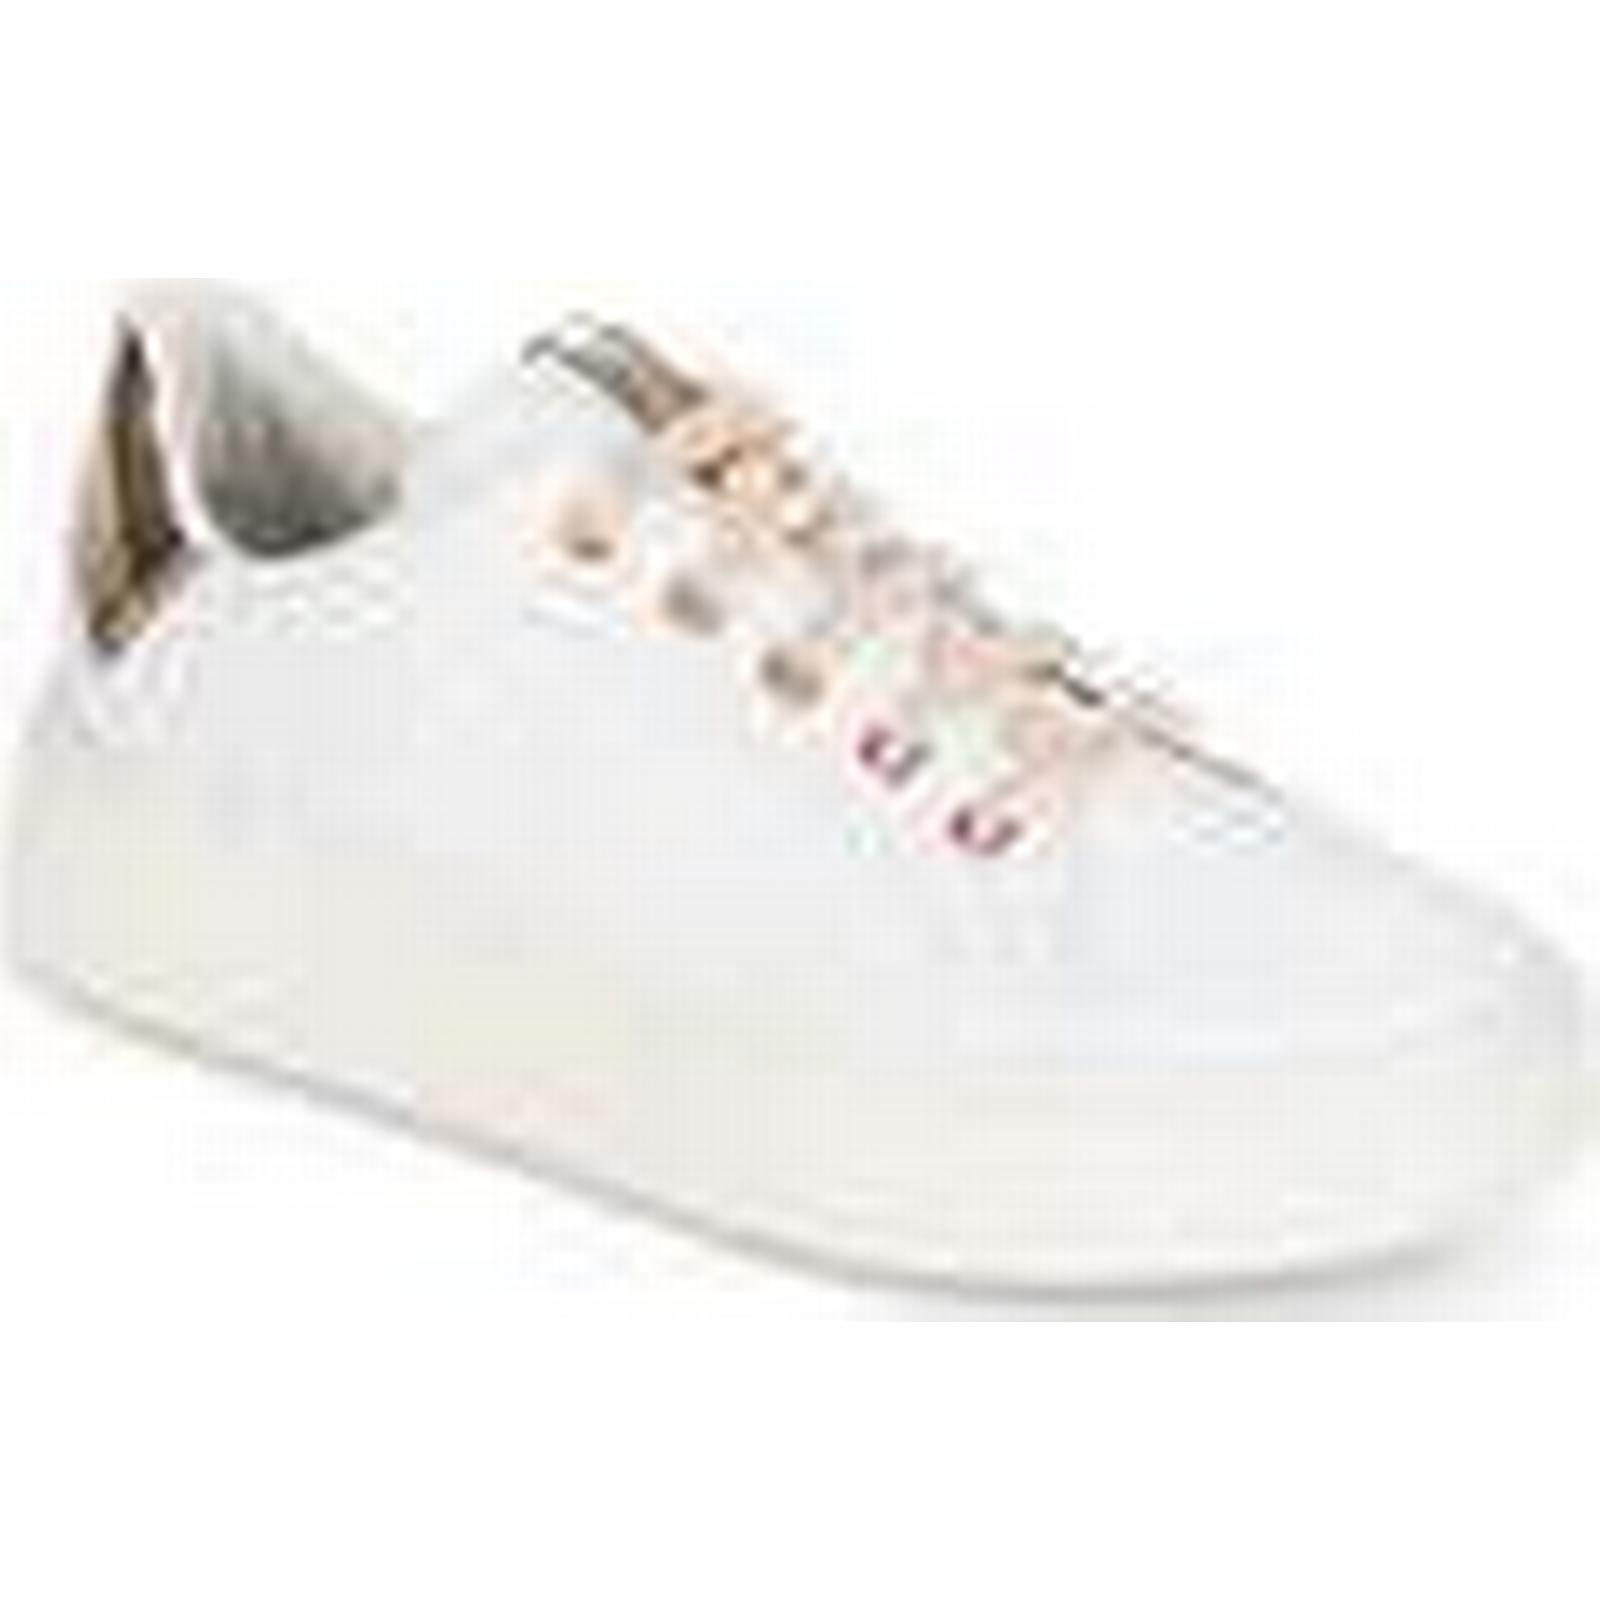 Geox  D NHENBUS A  women's Shoes (Trainers) in White White in 8a4eec